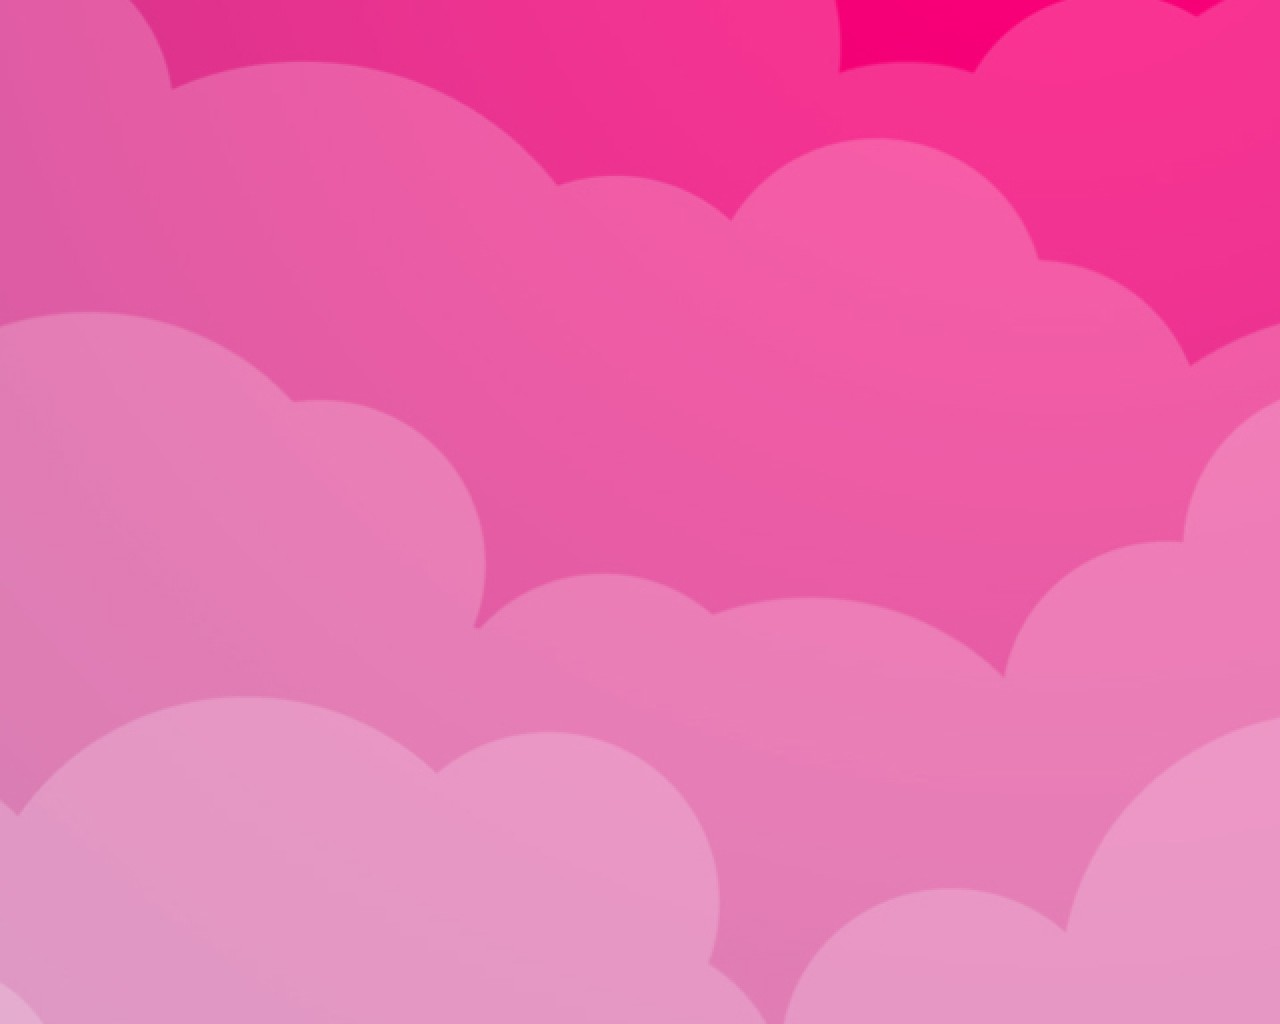 Other Resolution: Cute Pink Color Hd Wallpaper Image Picture for Your Iphone